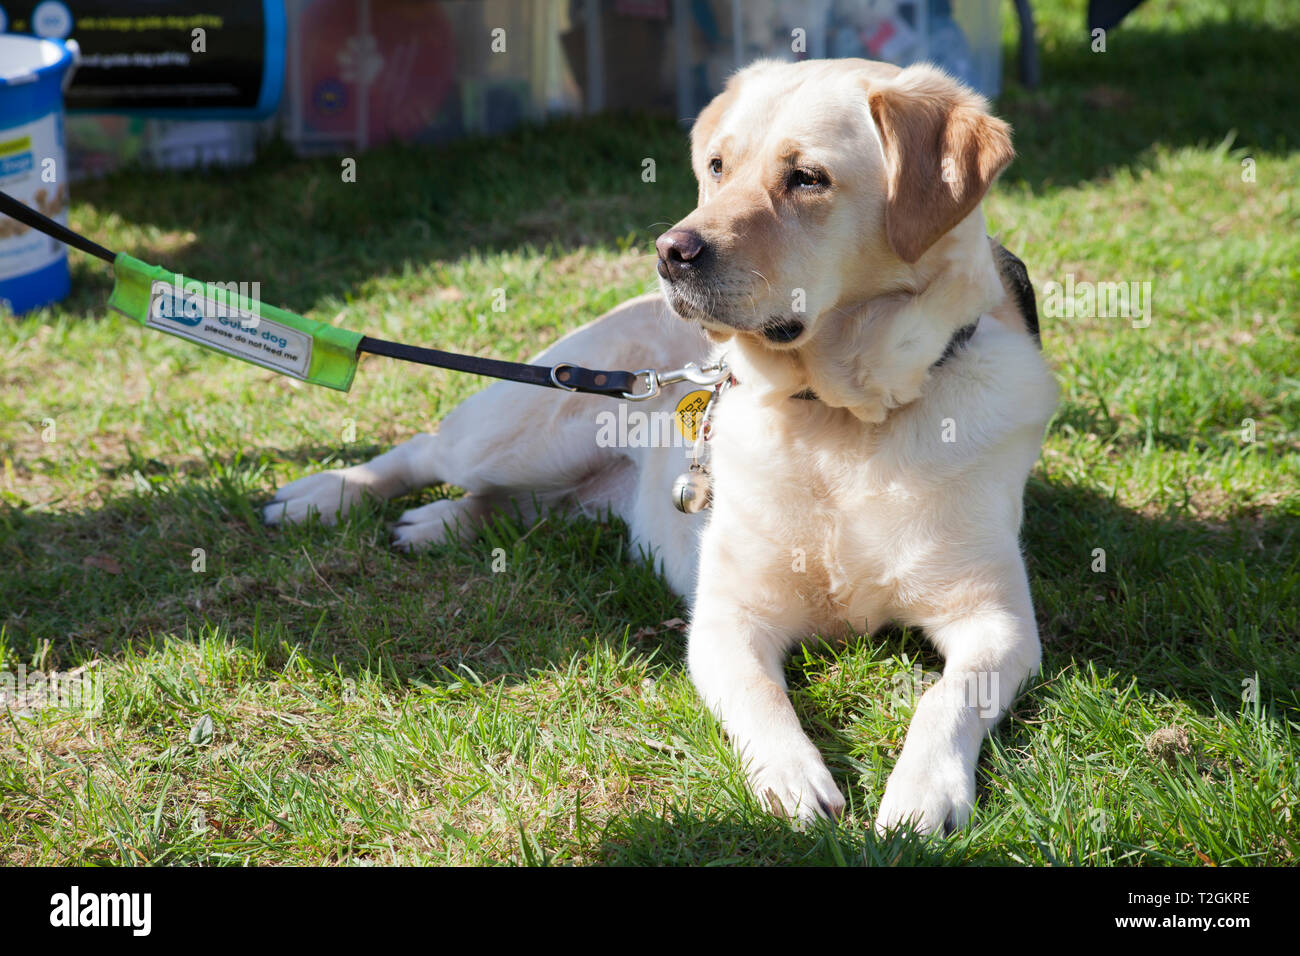 Golden Labrador as Guide Dog for the Blind at dog show in Helensburgh, Scotland - Stock Image